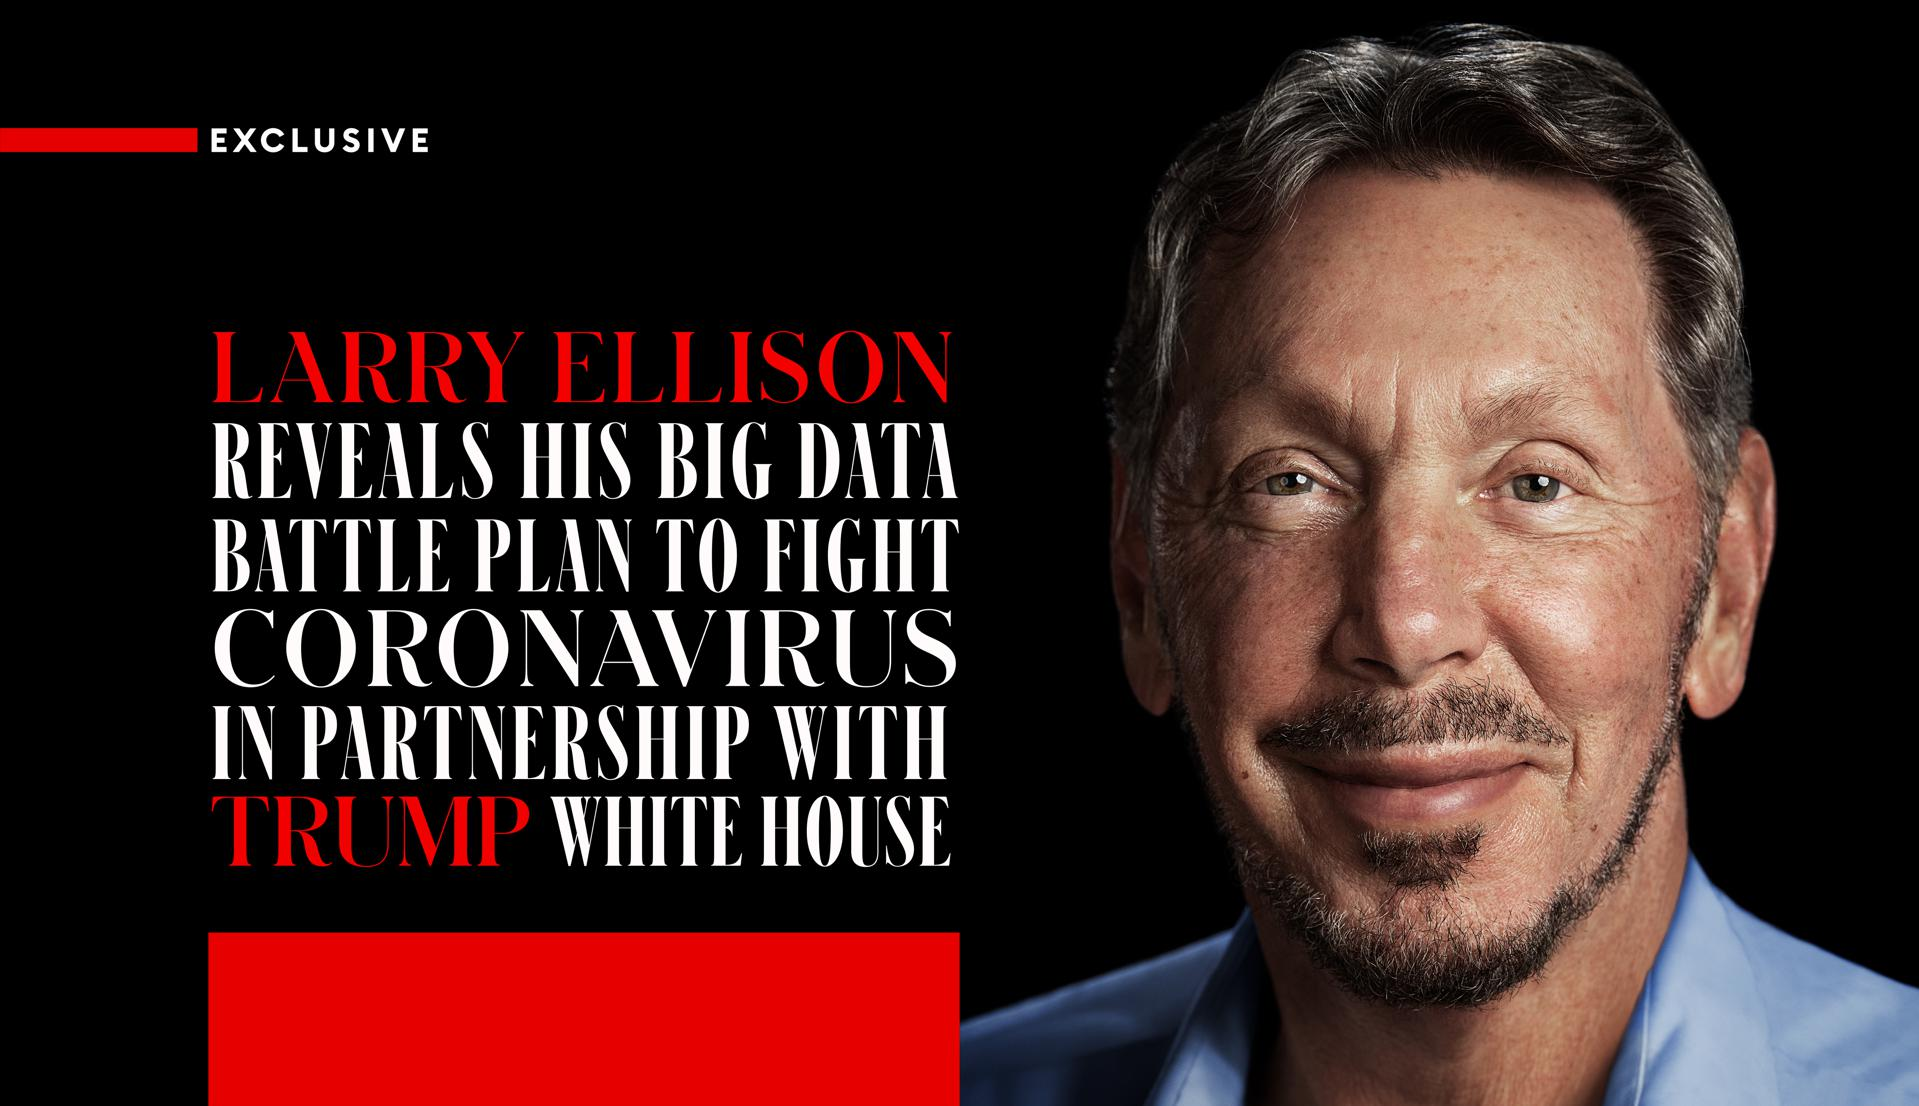 Exclusive: Larry Ellison Reveals His Big Data Battle Plan To Fight Coronavirus In Partnership With Trump White House